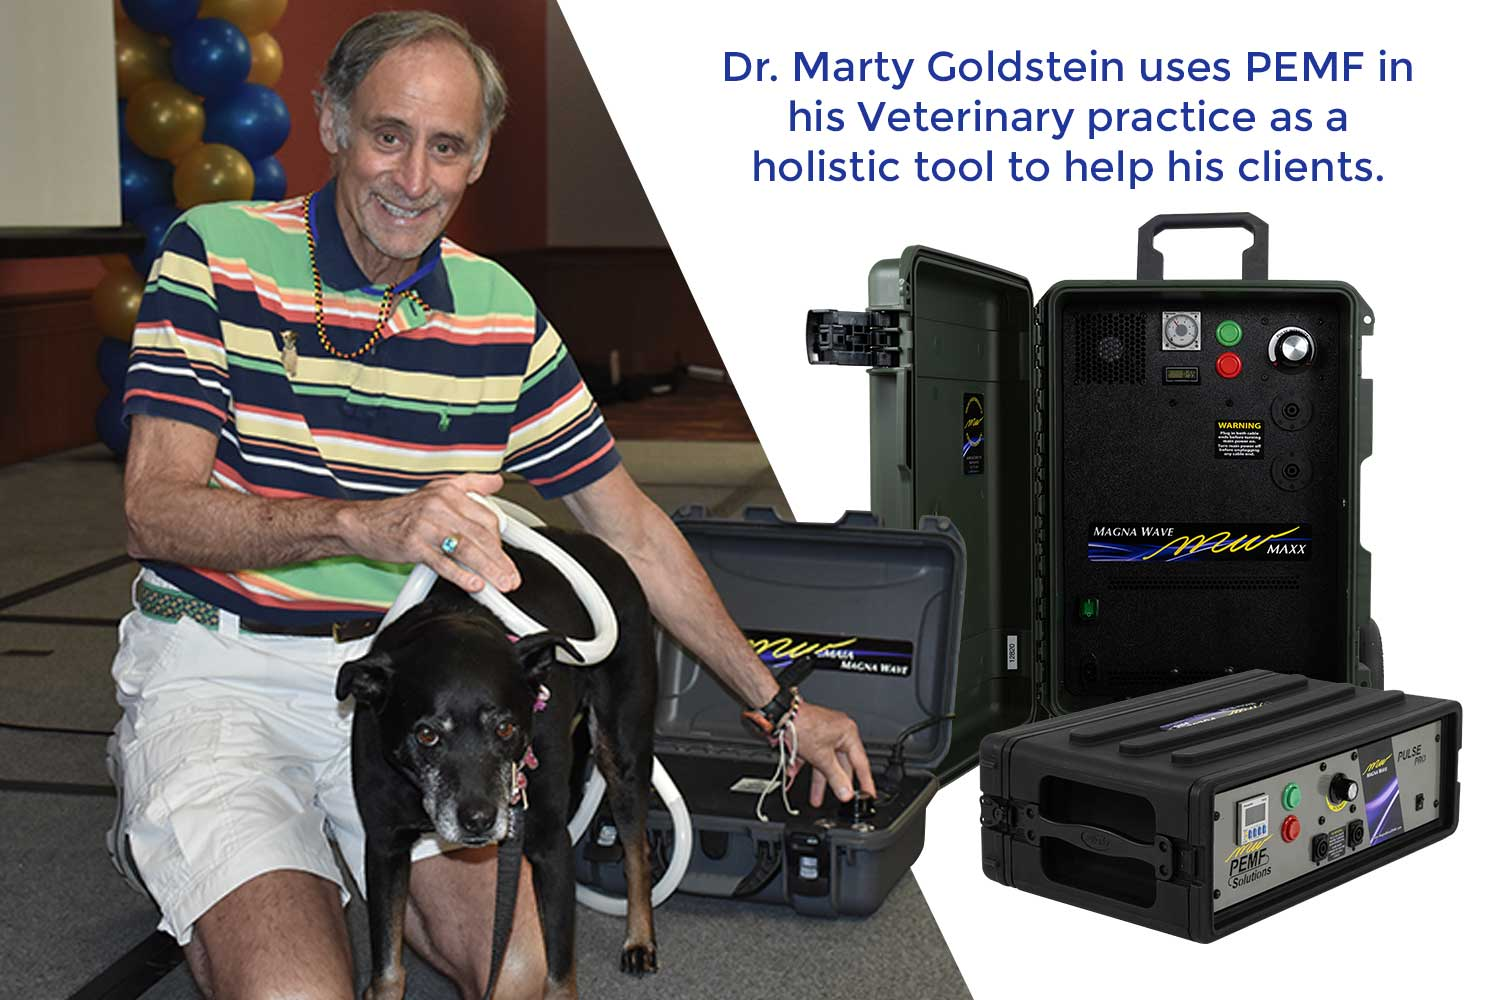 Dr. Marty Goldstein uses PEMF in his Veterinary practice as a holistic tool to help his clients